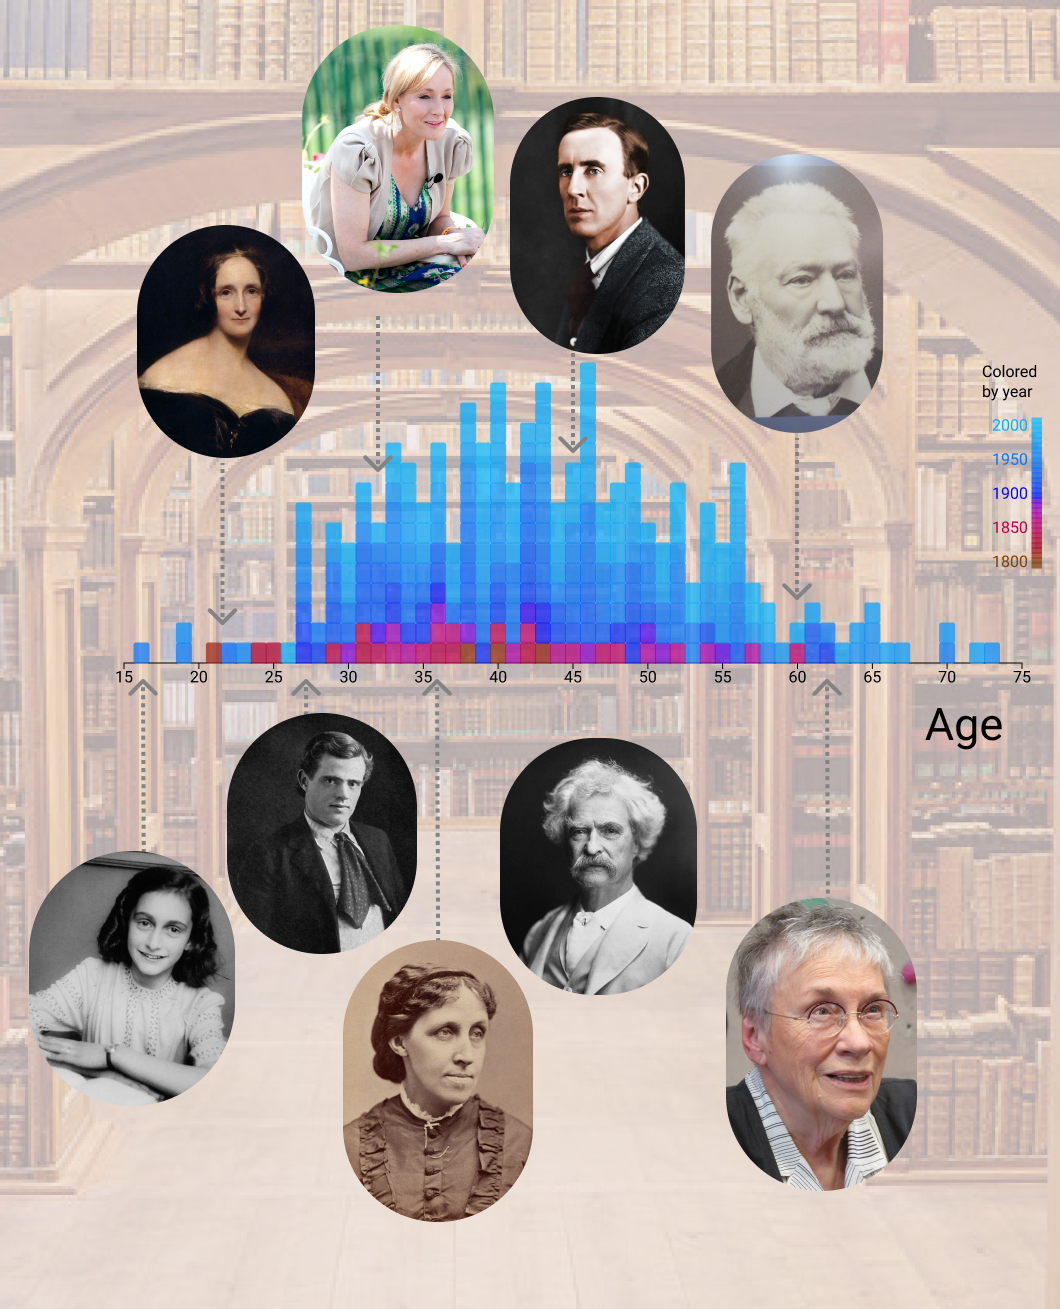 Histogram showing number of authors at each age. Annotated with images of Anne Frank, Mary Shelly, Jack London, Louisa May Alcott, JK Rowling, Mark Twain, JRR Tolkien, Victor Hugo and Annie Proulx.